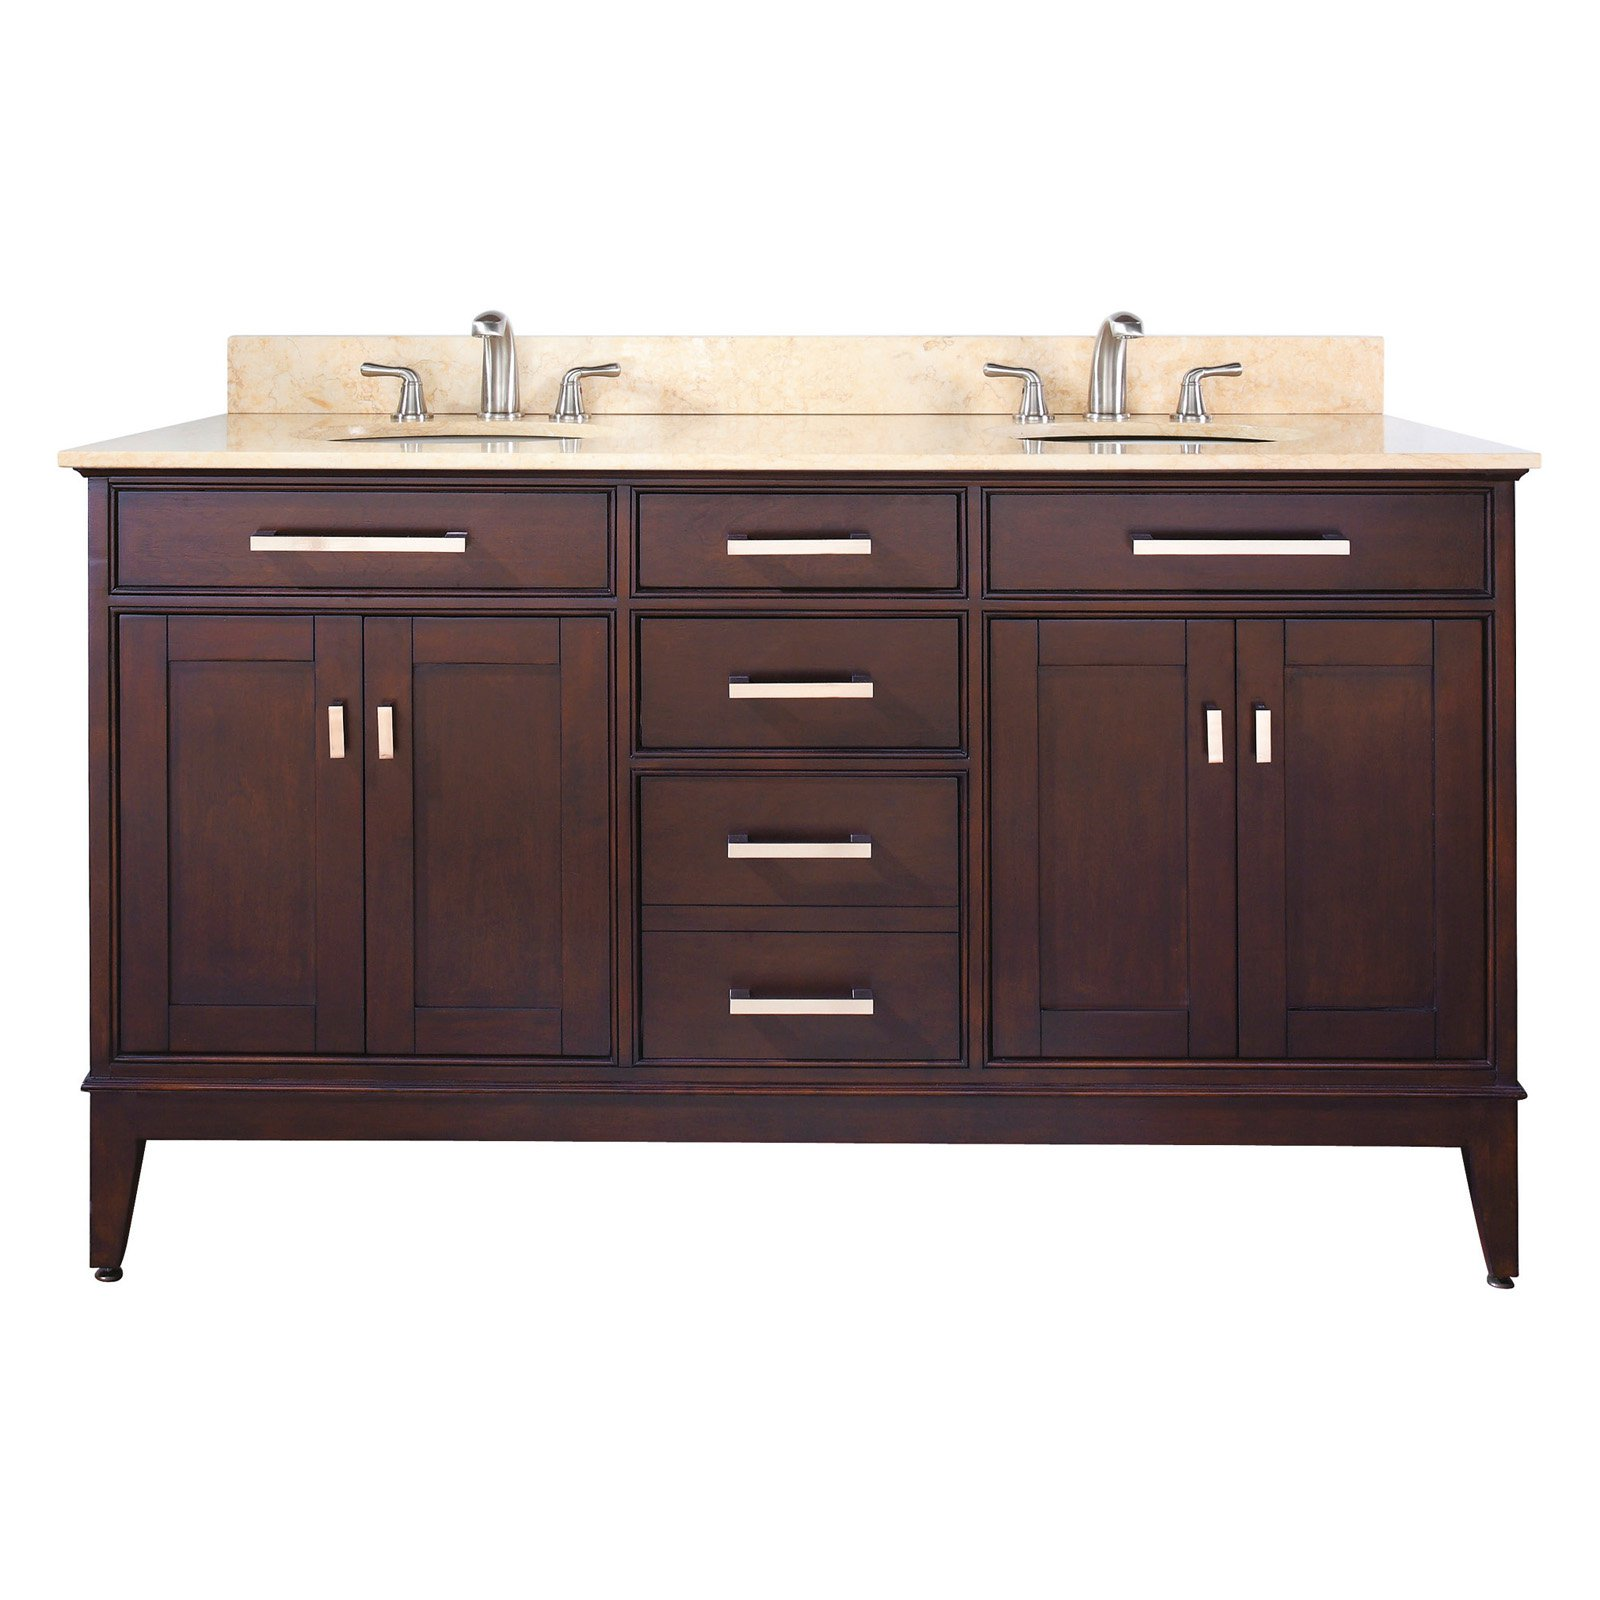 MADISON-VS60-TO-C Avanity Madison 60 in. Vanity with Carrera White Marble Top and Double Sinks in Tobacco finish